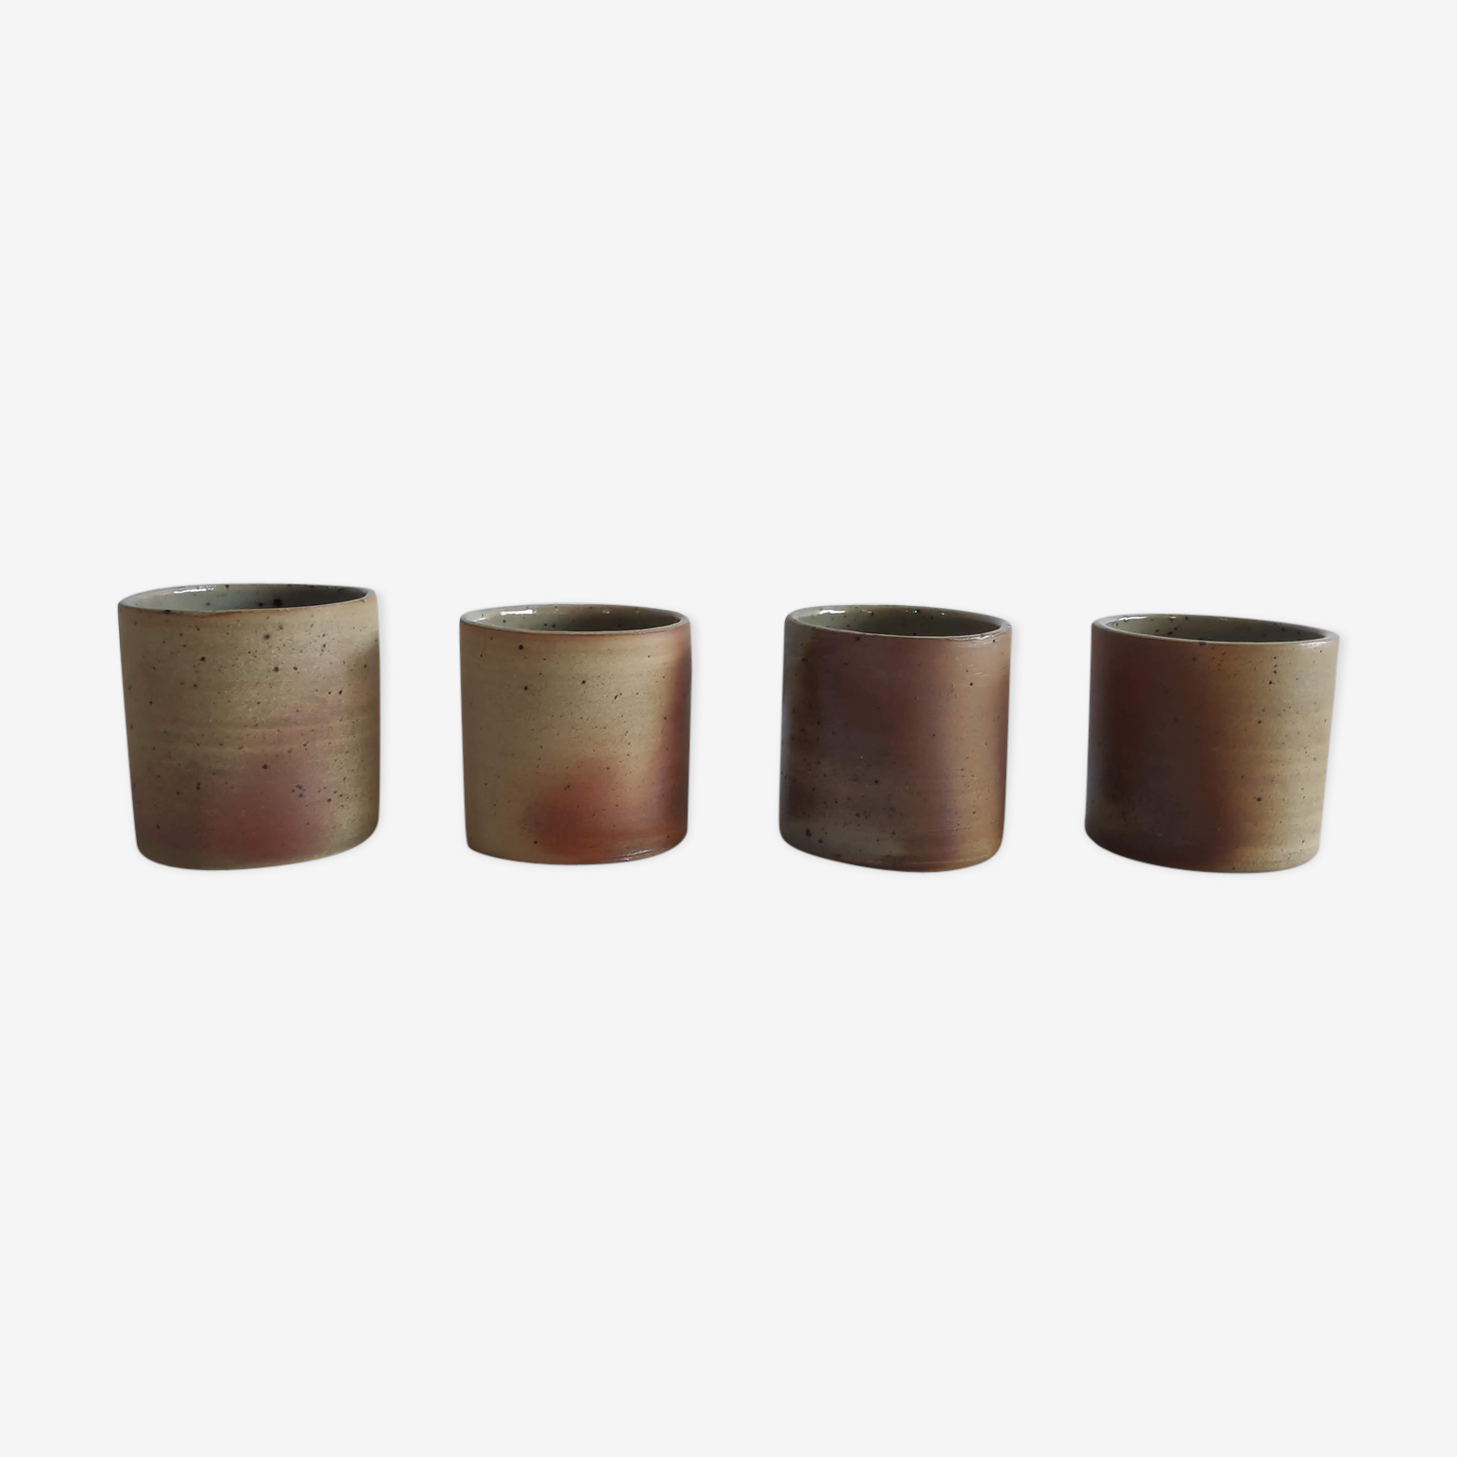 4 mugs in ochre sandstone of the 1960